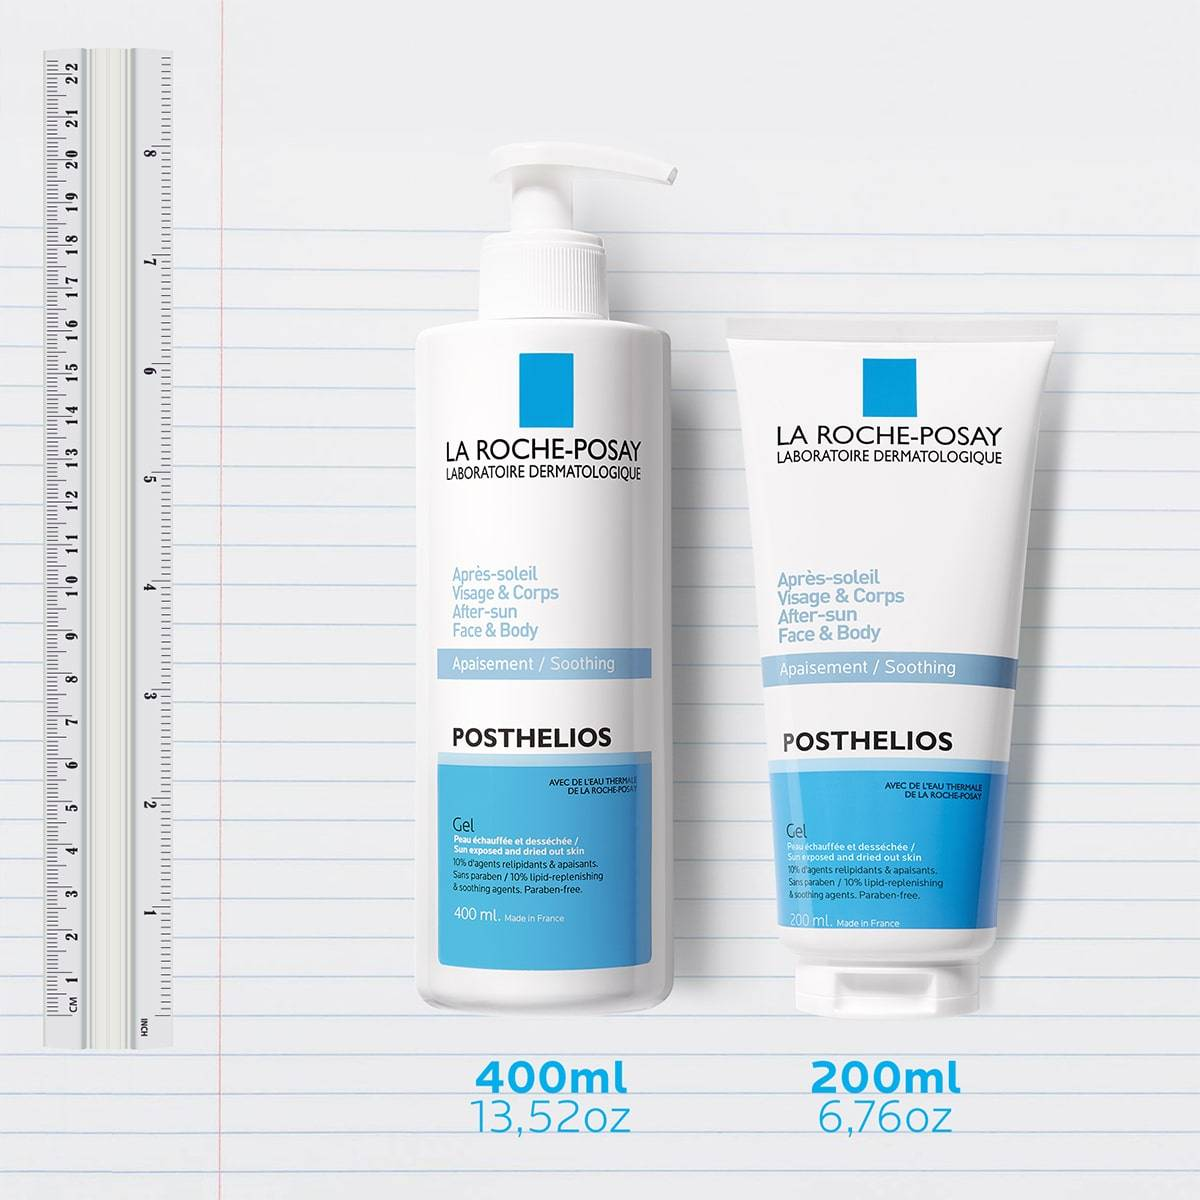 La Roche Posay ProductPage After Sun Posthelios Melt In Gel Family 333